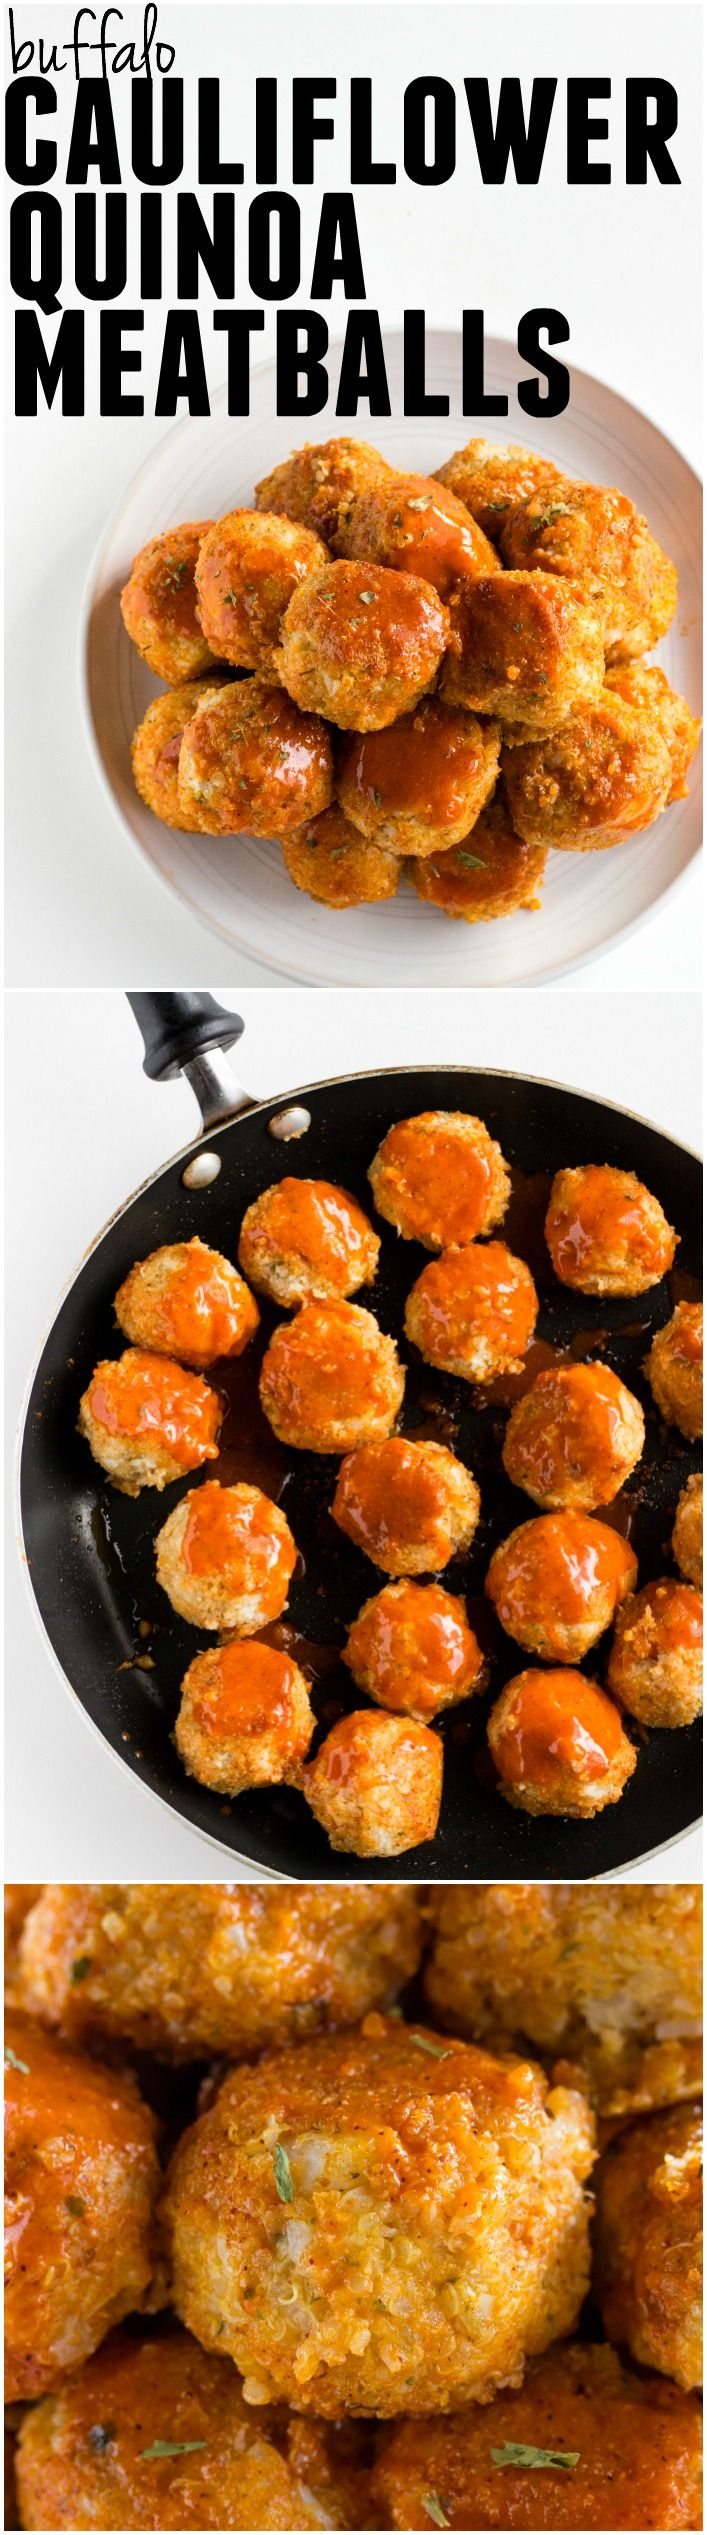 Vegan Buffalo Cauliflower Quinoa balls | healthy recipe ideas @xhealthyrecipex |